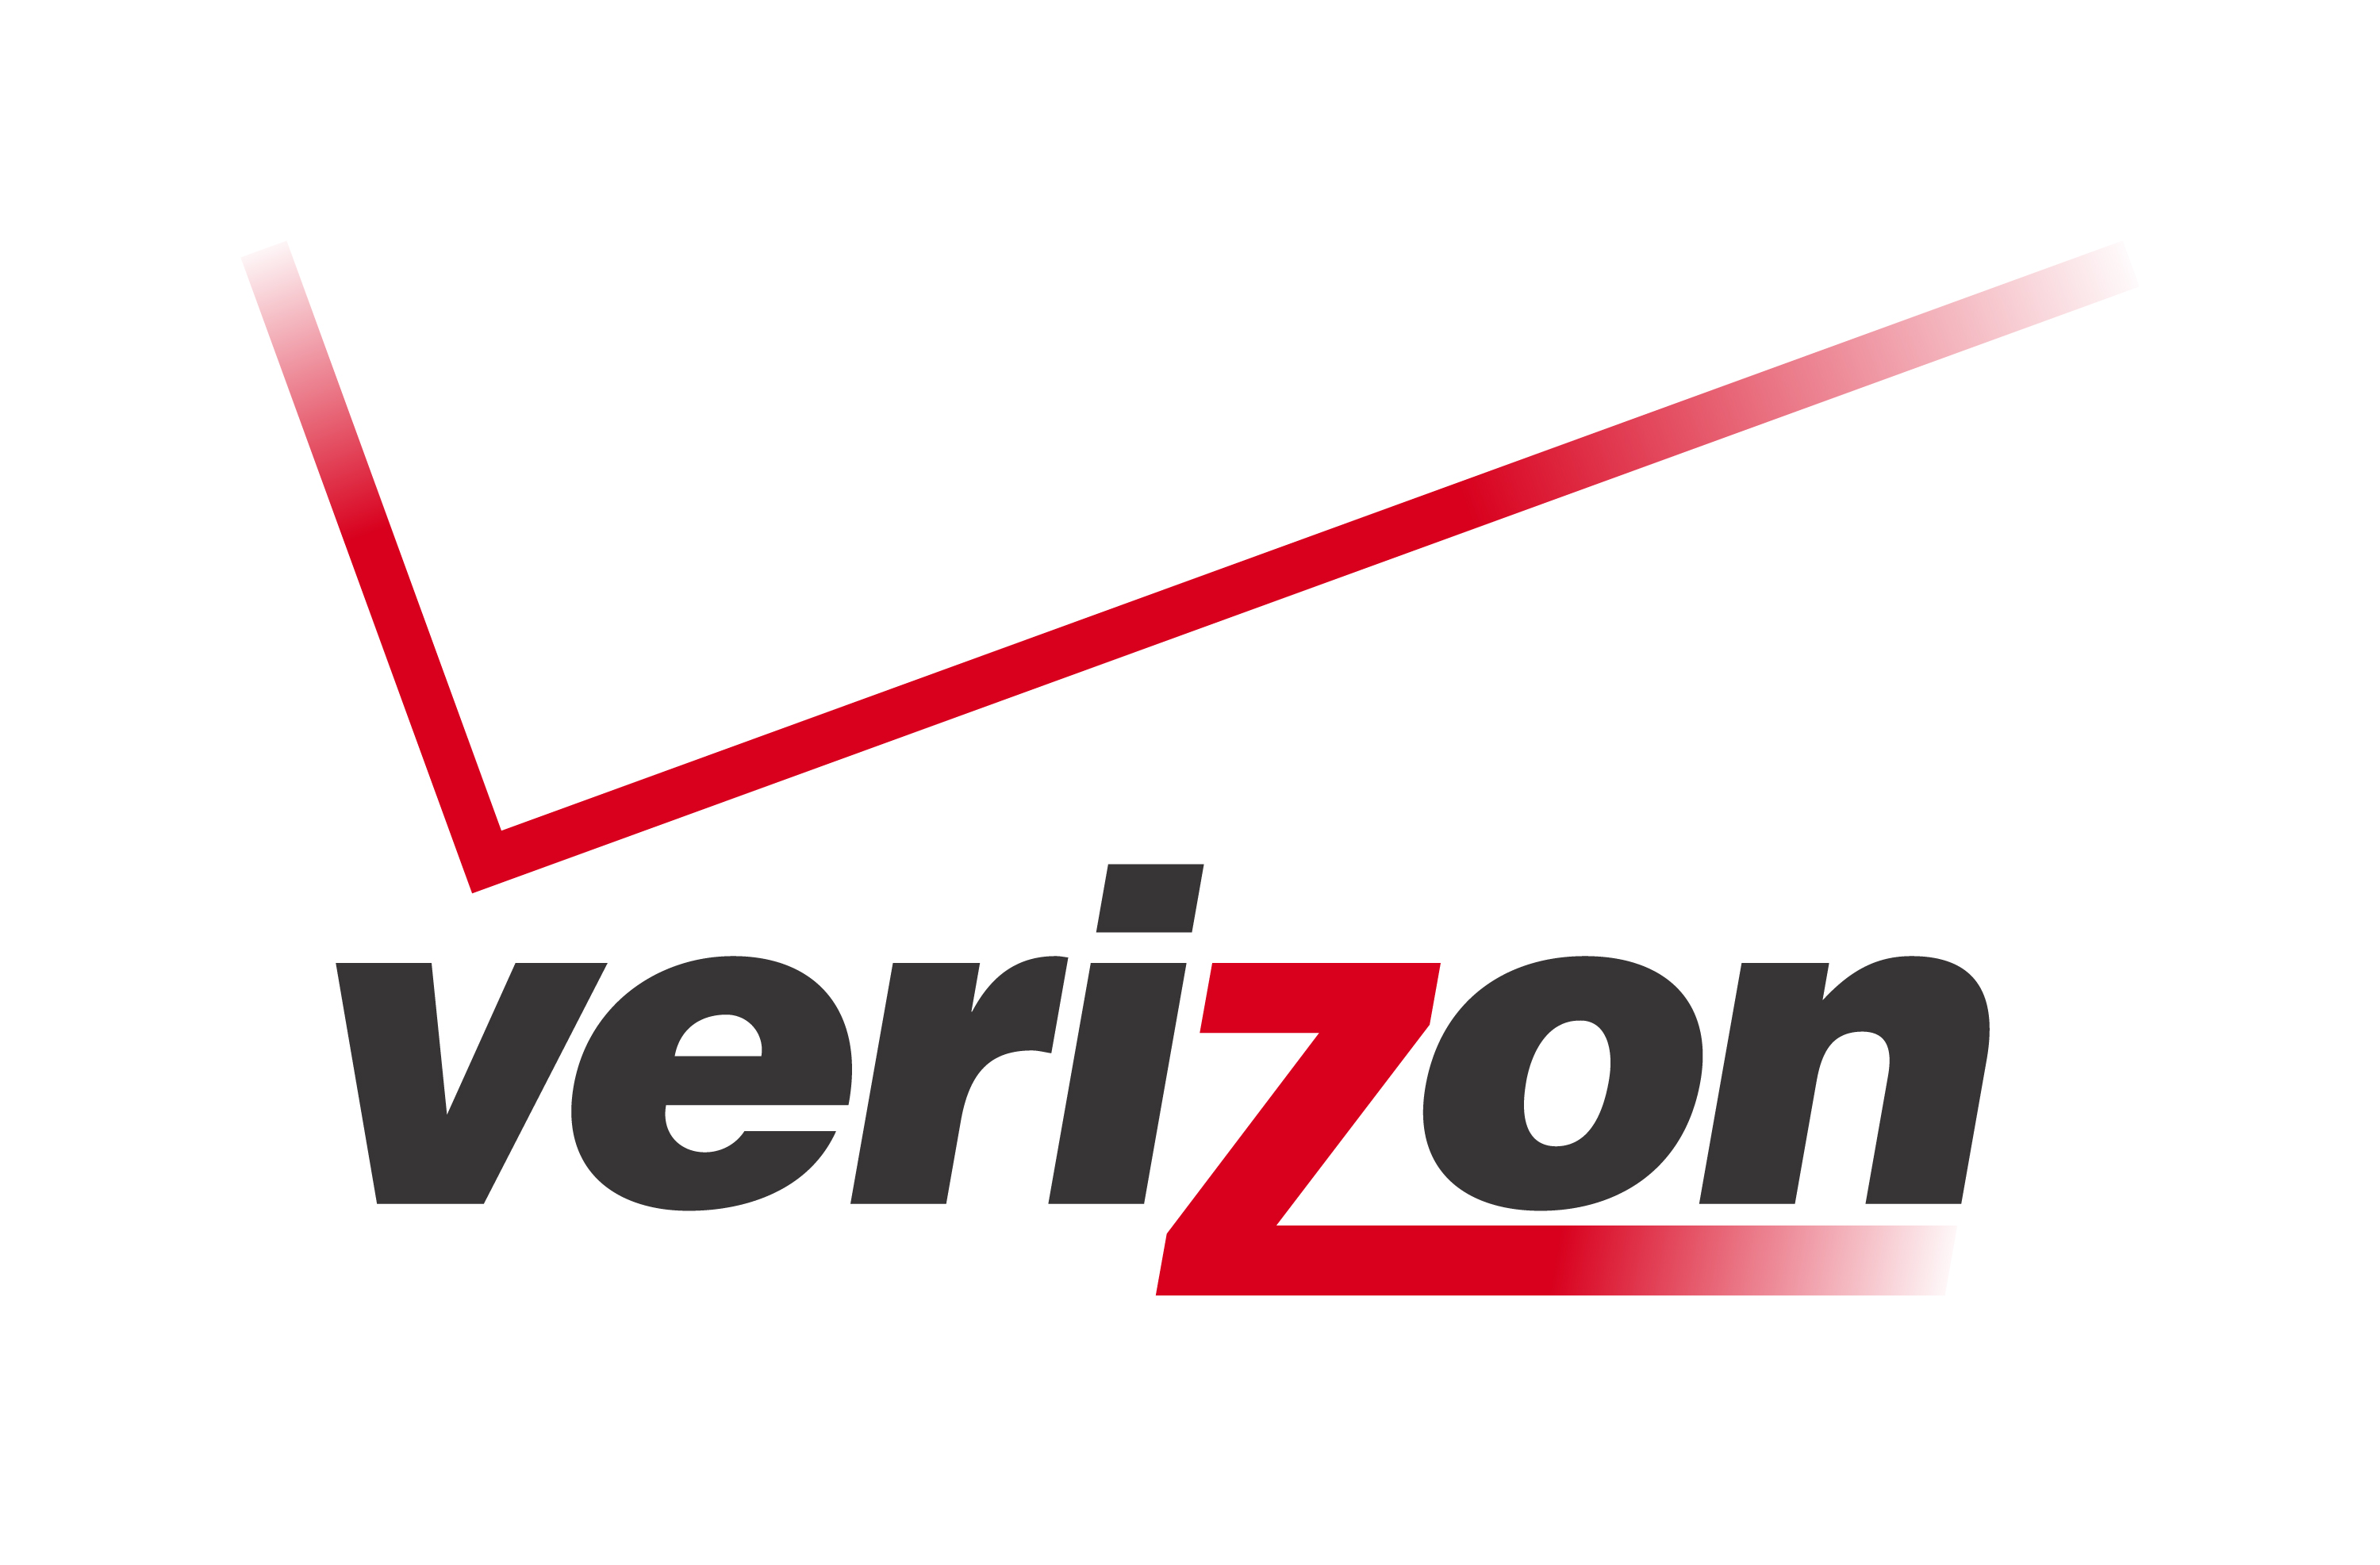 Cellco Partnership, Inc., doing business as Verizon Wireless (commonly shortened to Verizon, and stylized as verizon), is an American telecommunications company which offers wireless products and services. It is a wholly owned subsidiary of Verizon Communications. With .